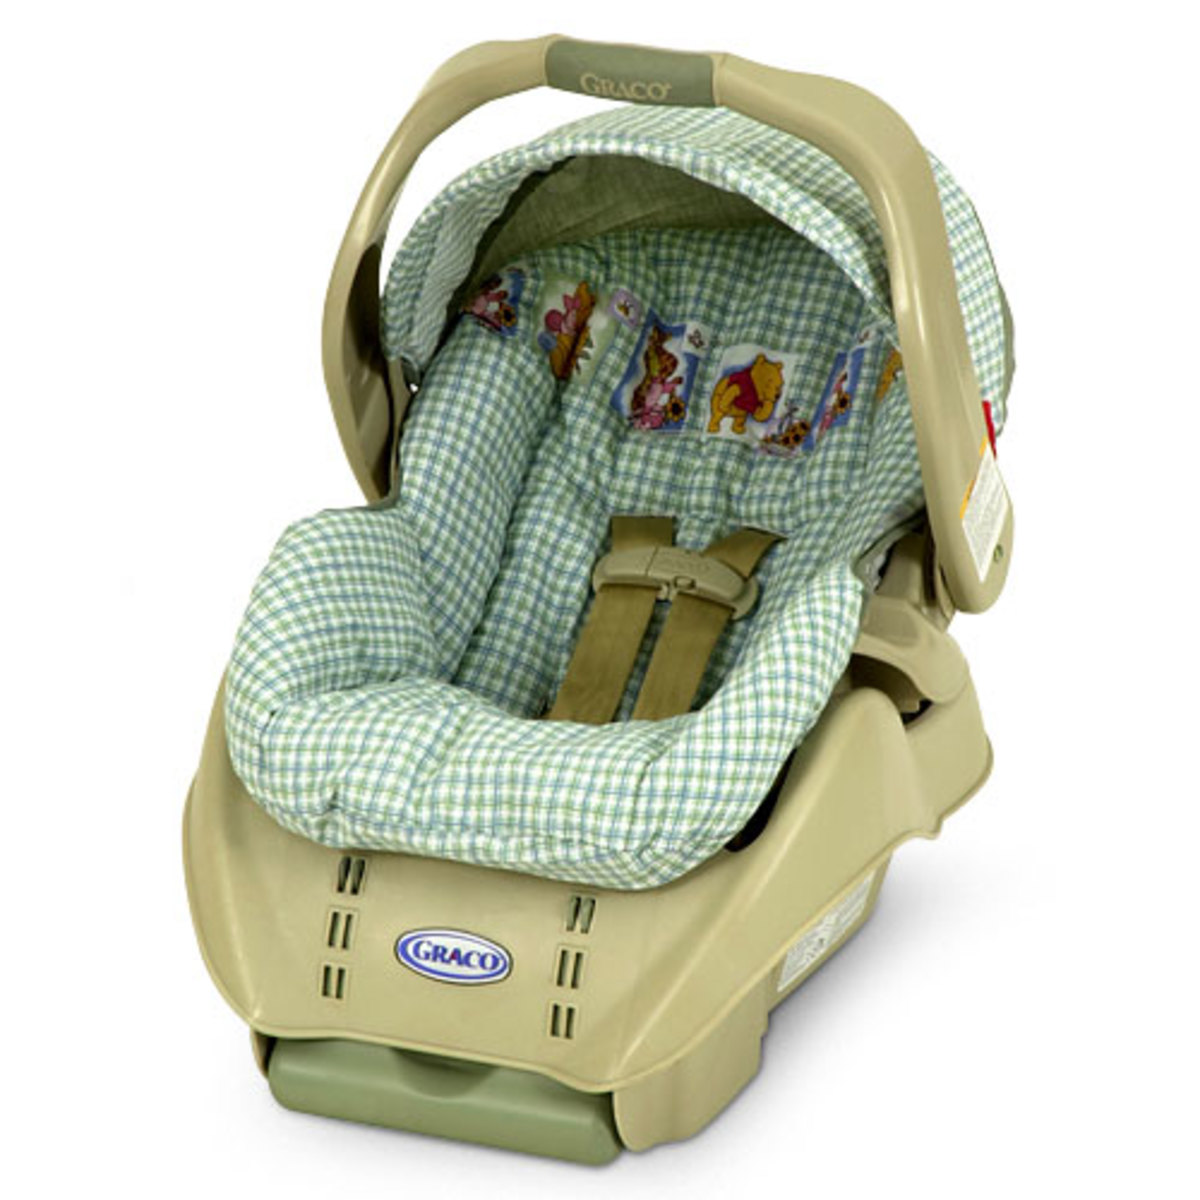 What Car Seat Do You Use After Infant